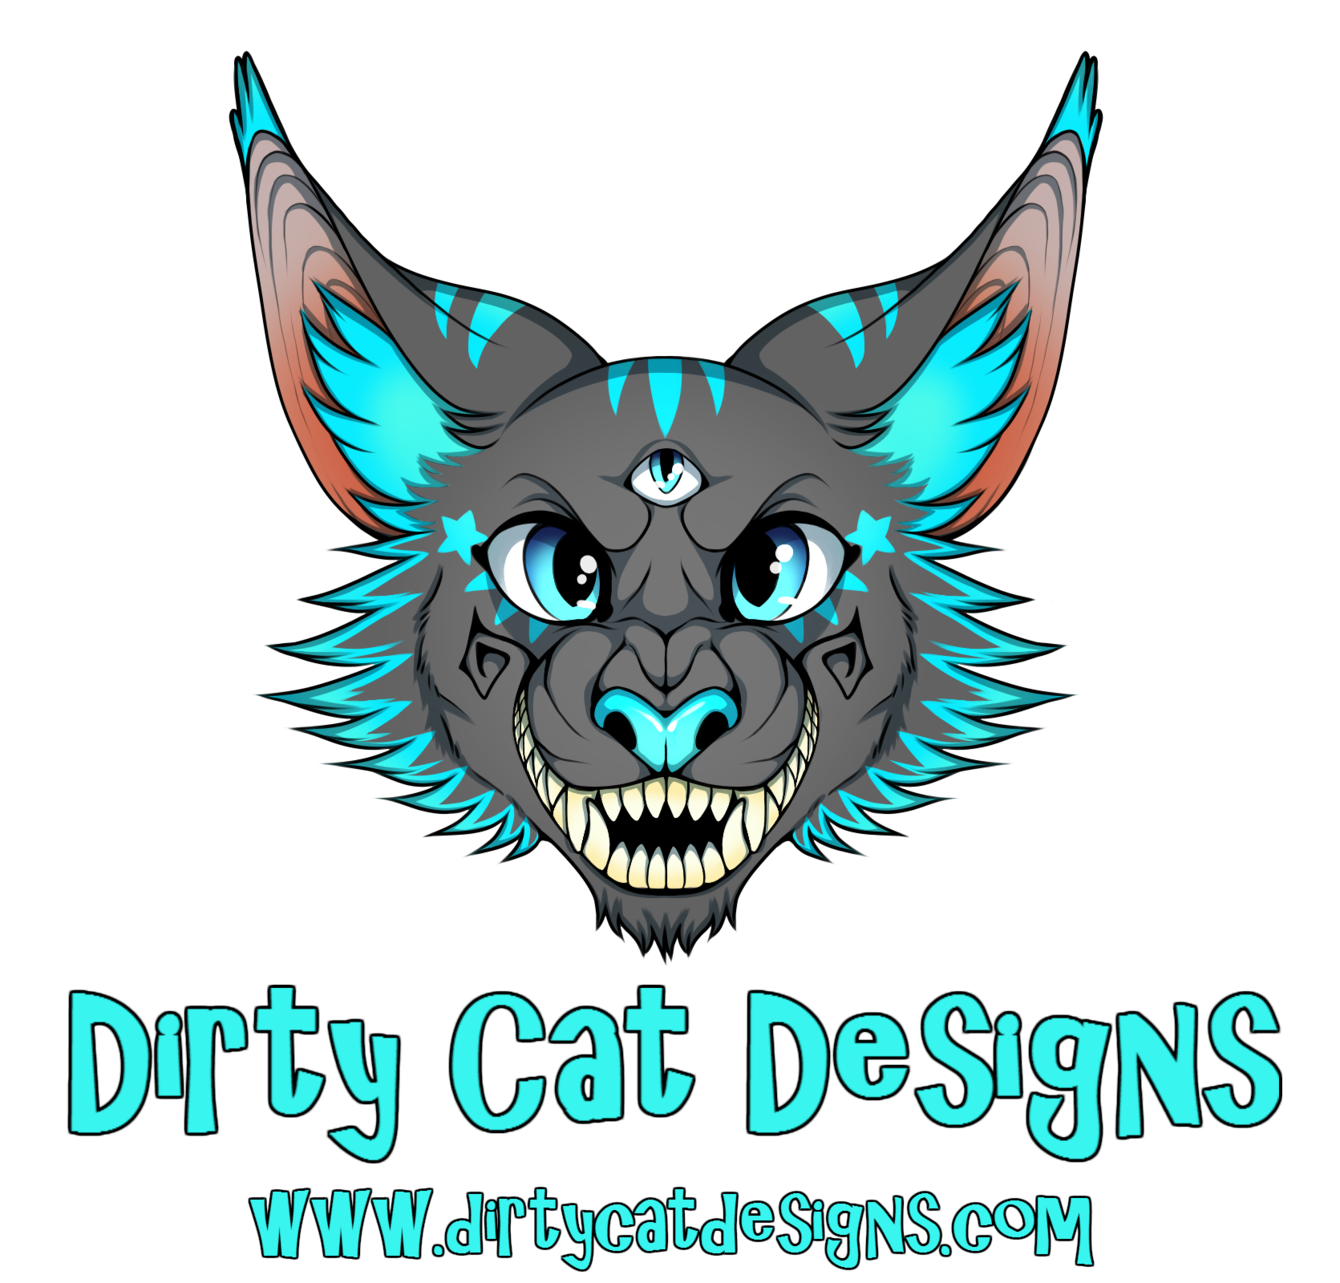 [   Dirty Cat Designs   ]